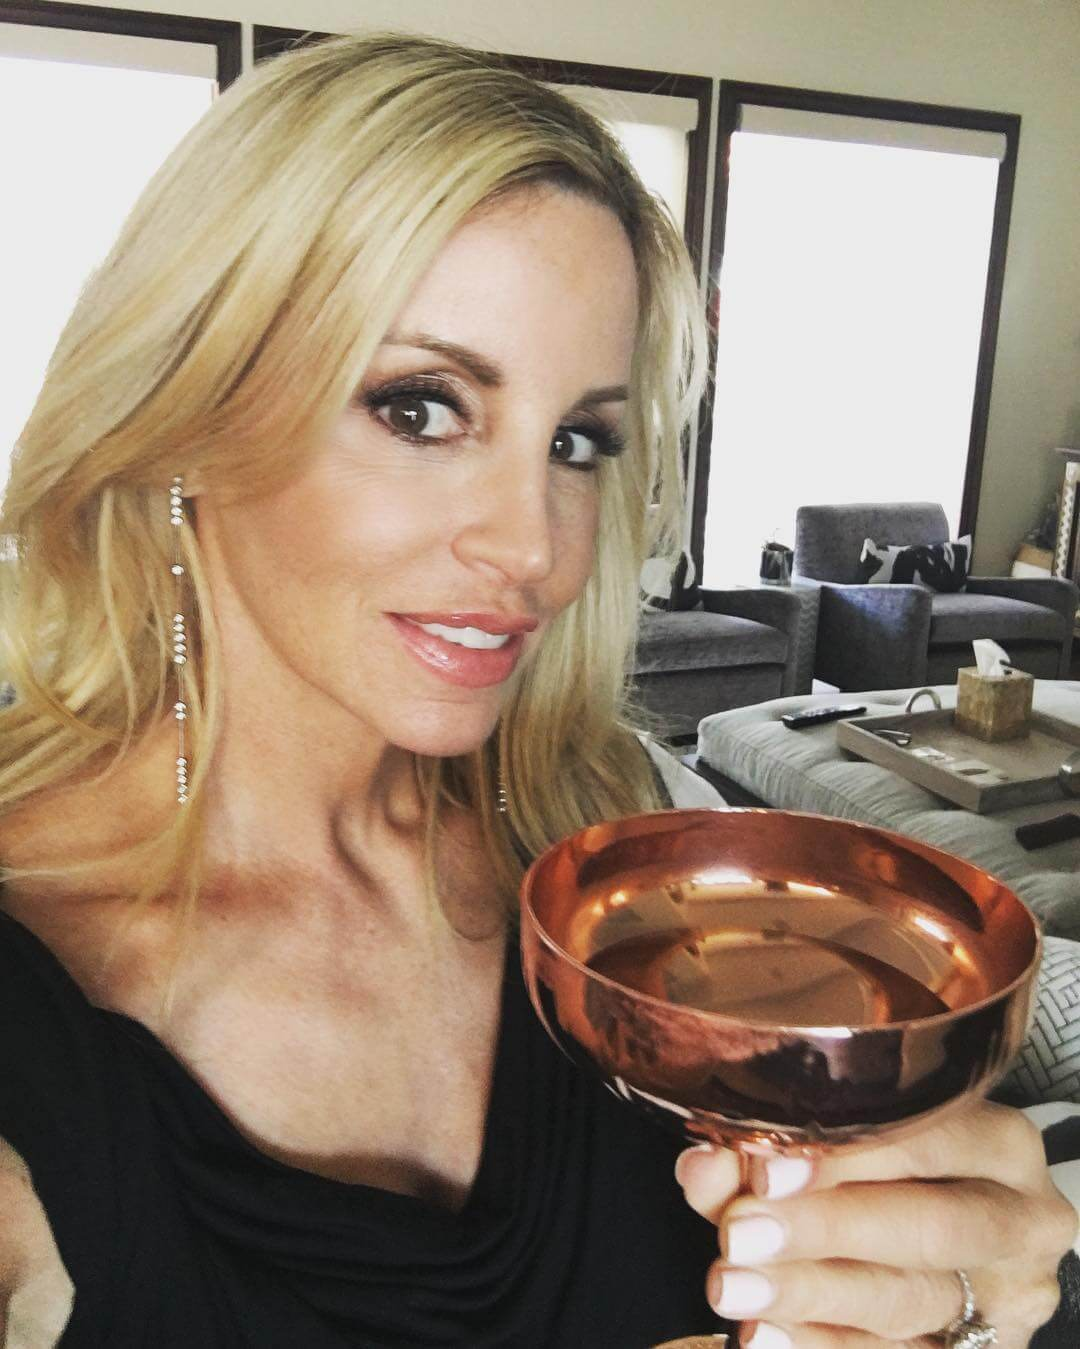 Camille Grammer cleavages pic